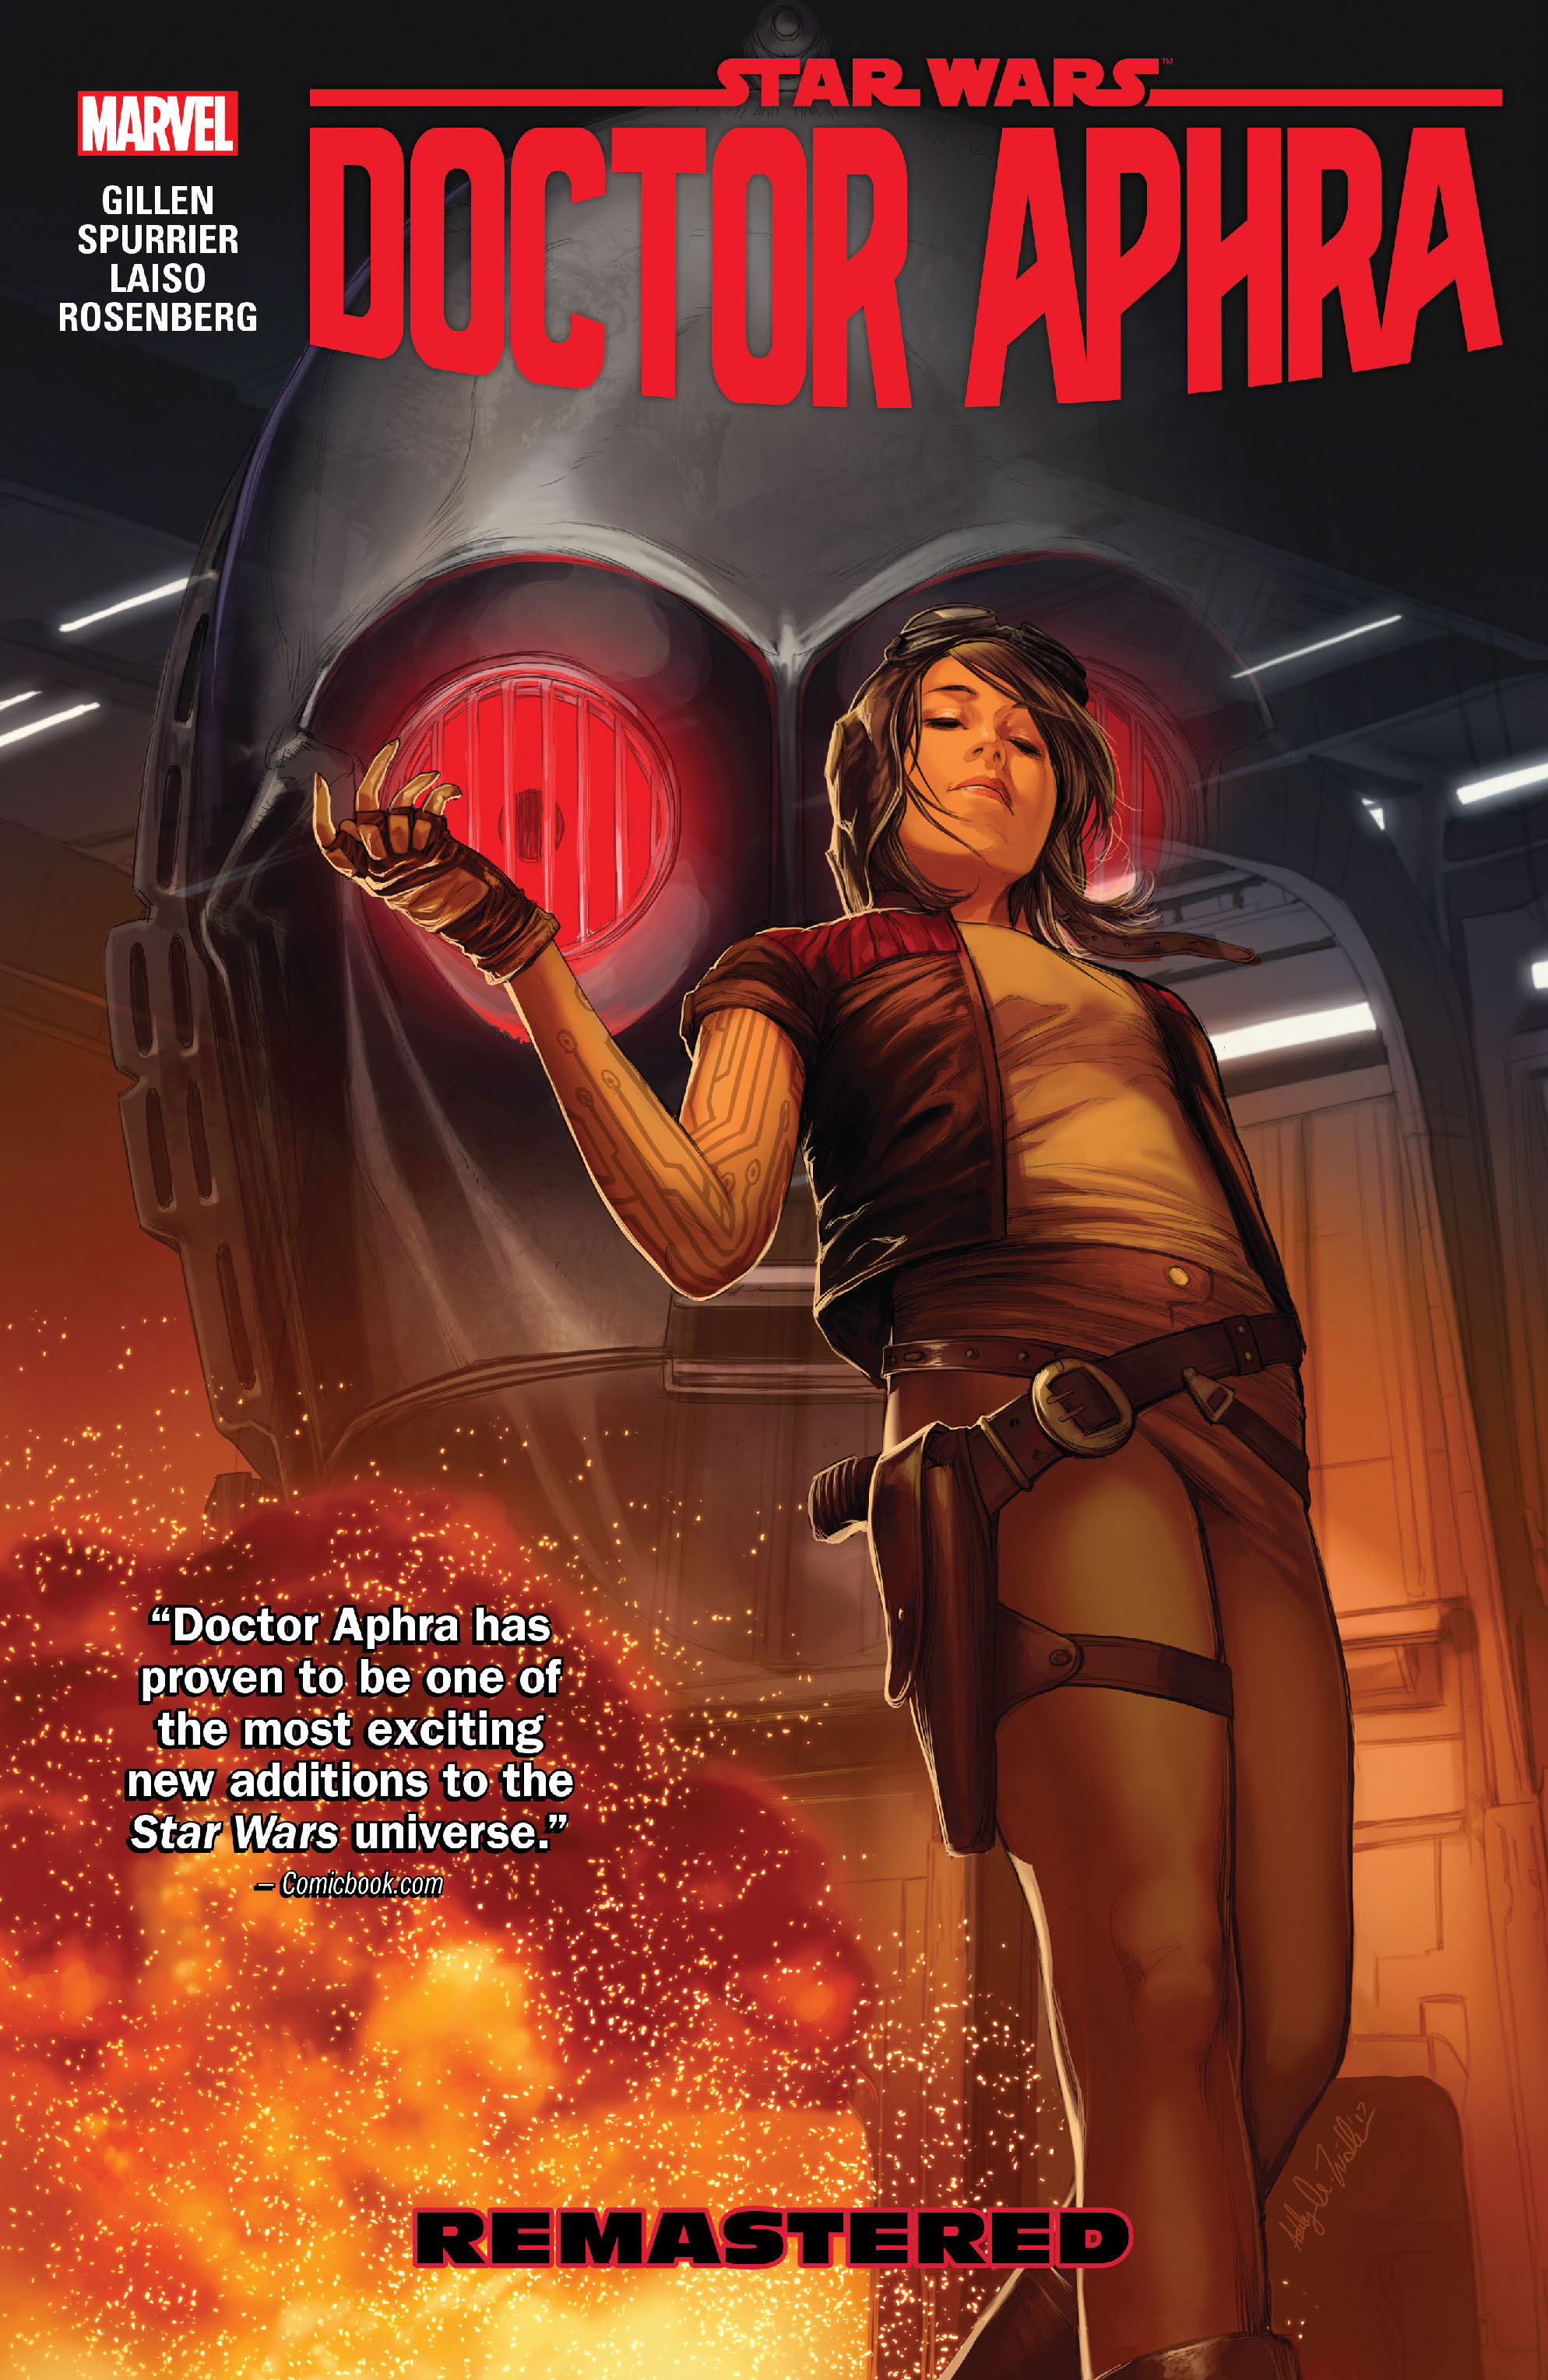 Image result for doctor aphra remastered cover amazon